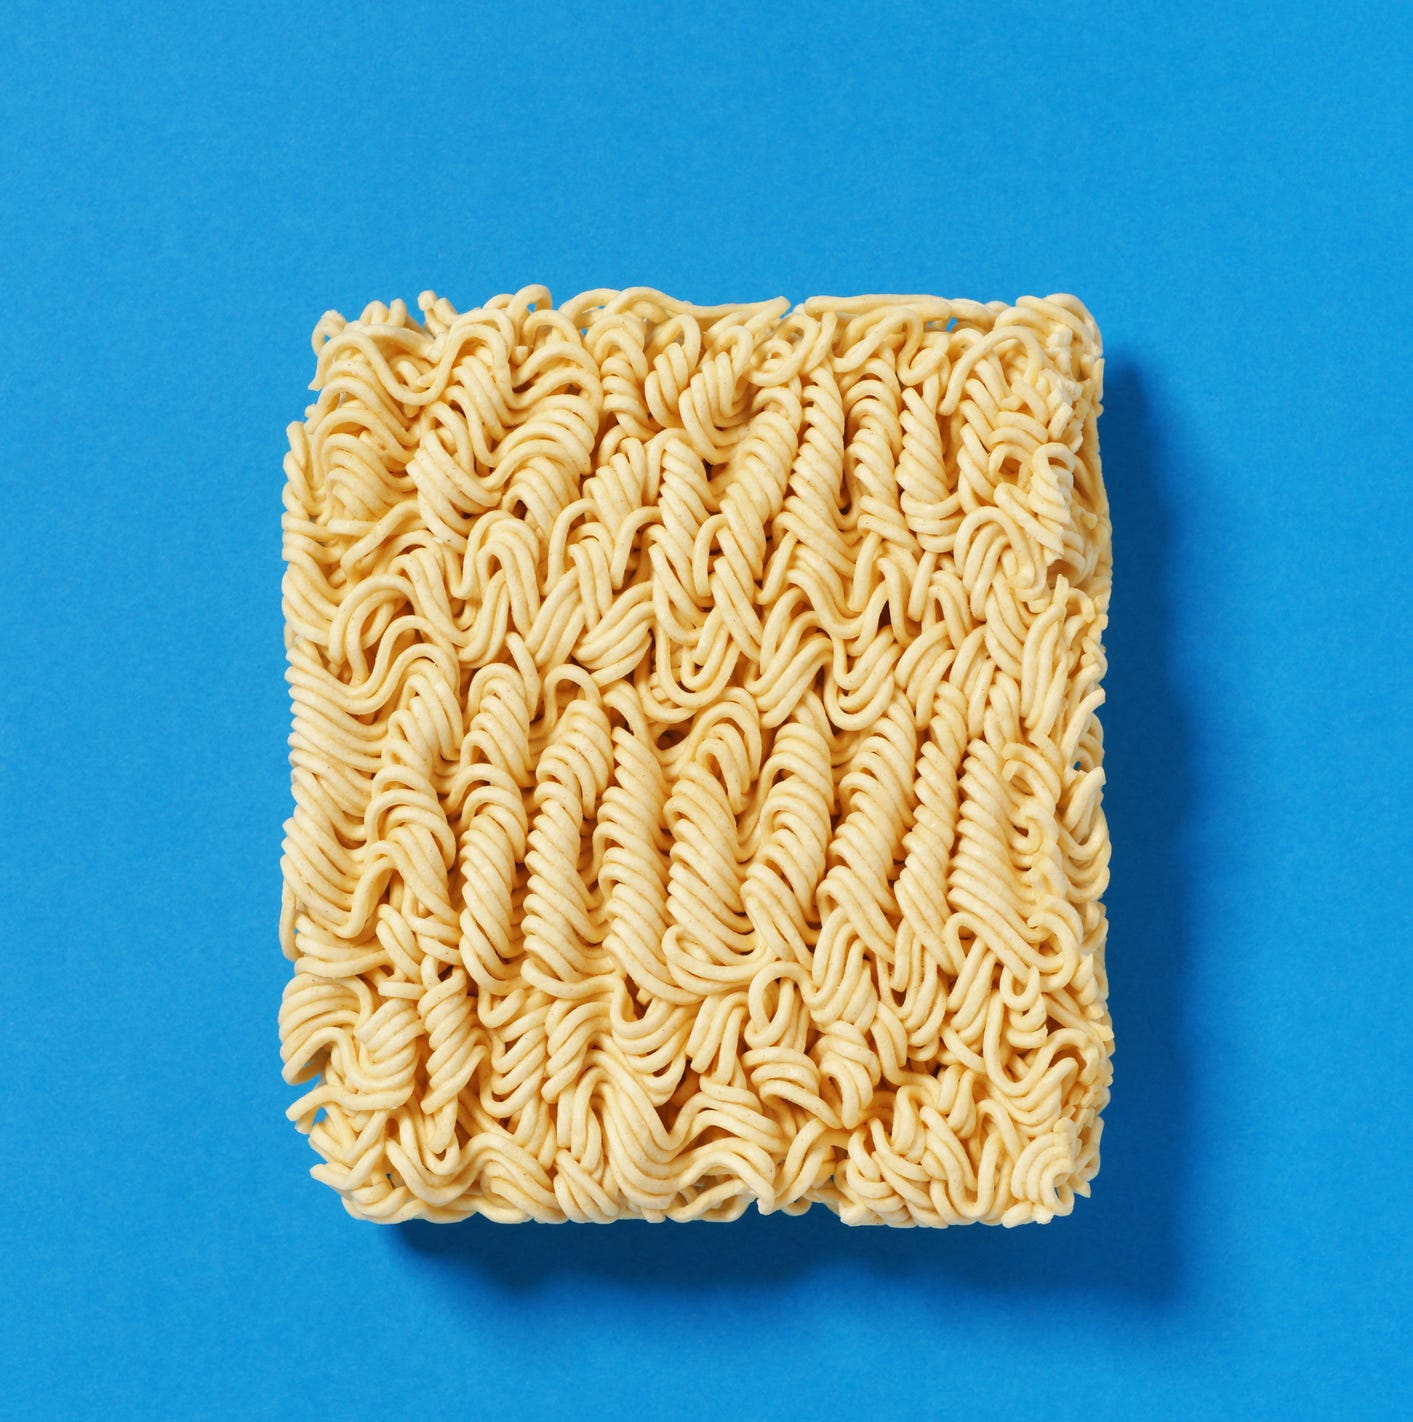 Block of instant ramen noodles.